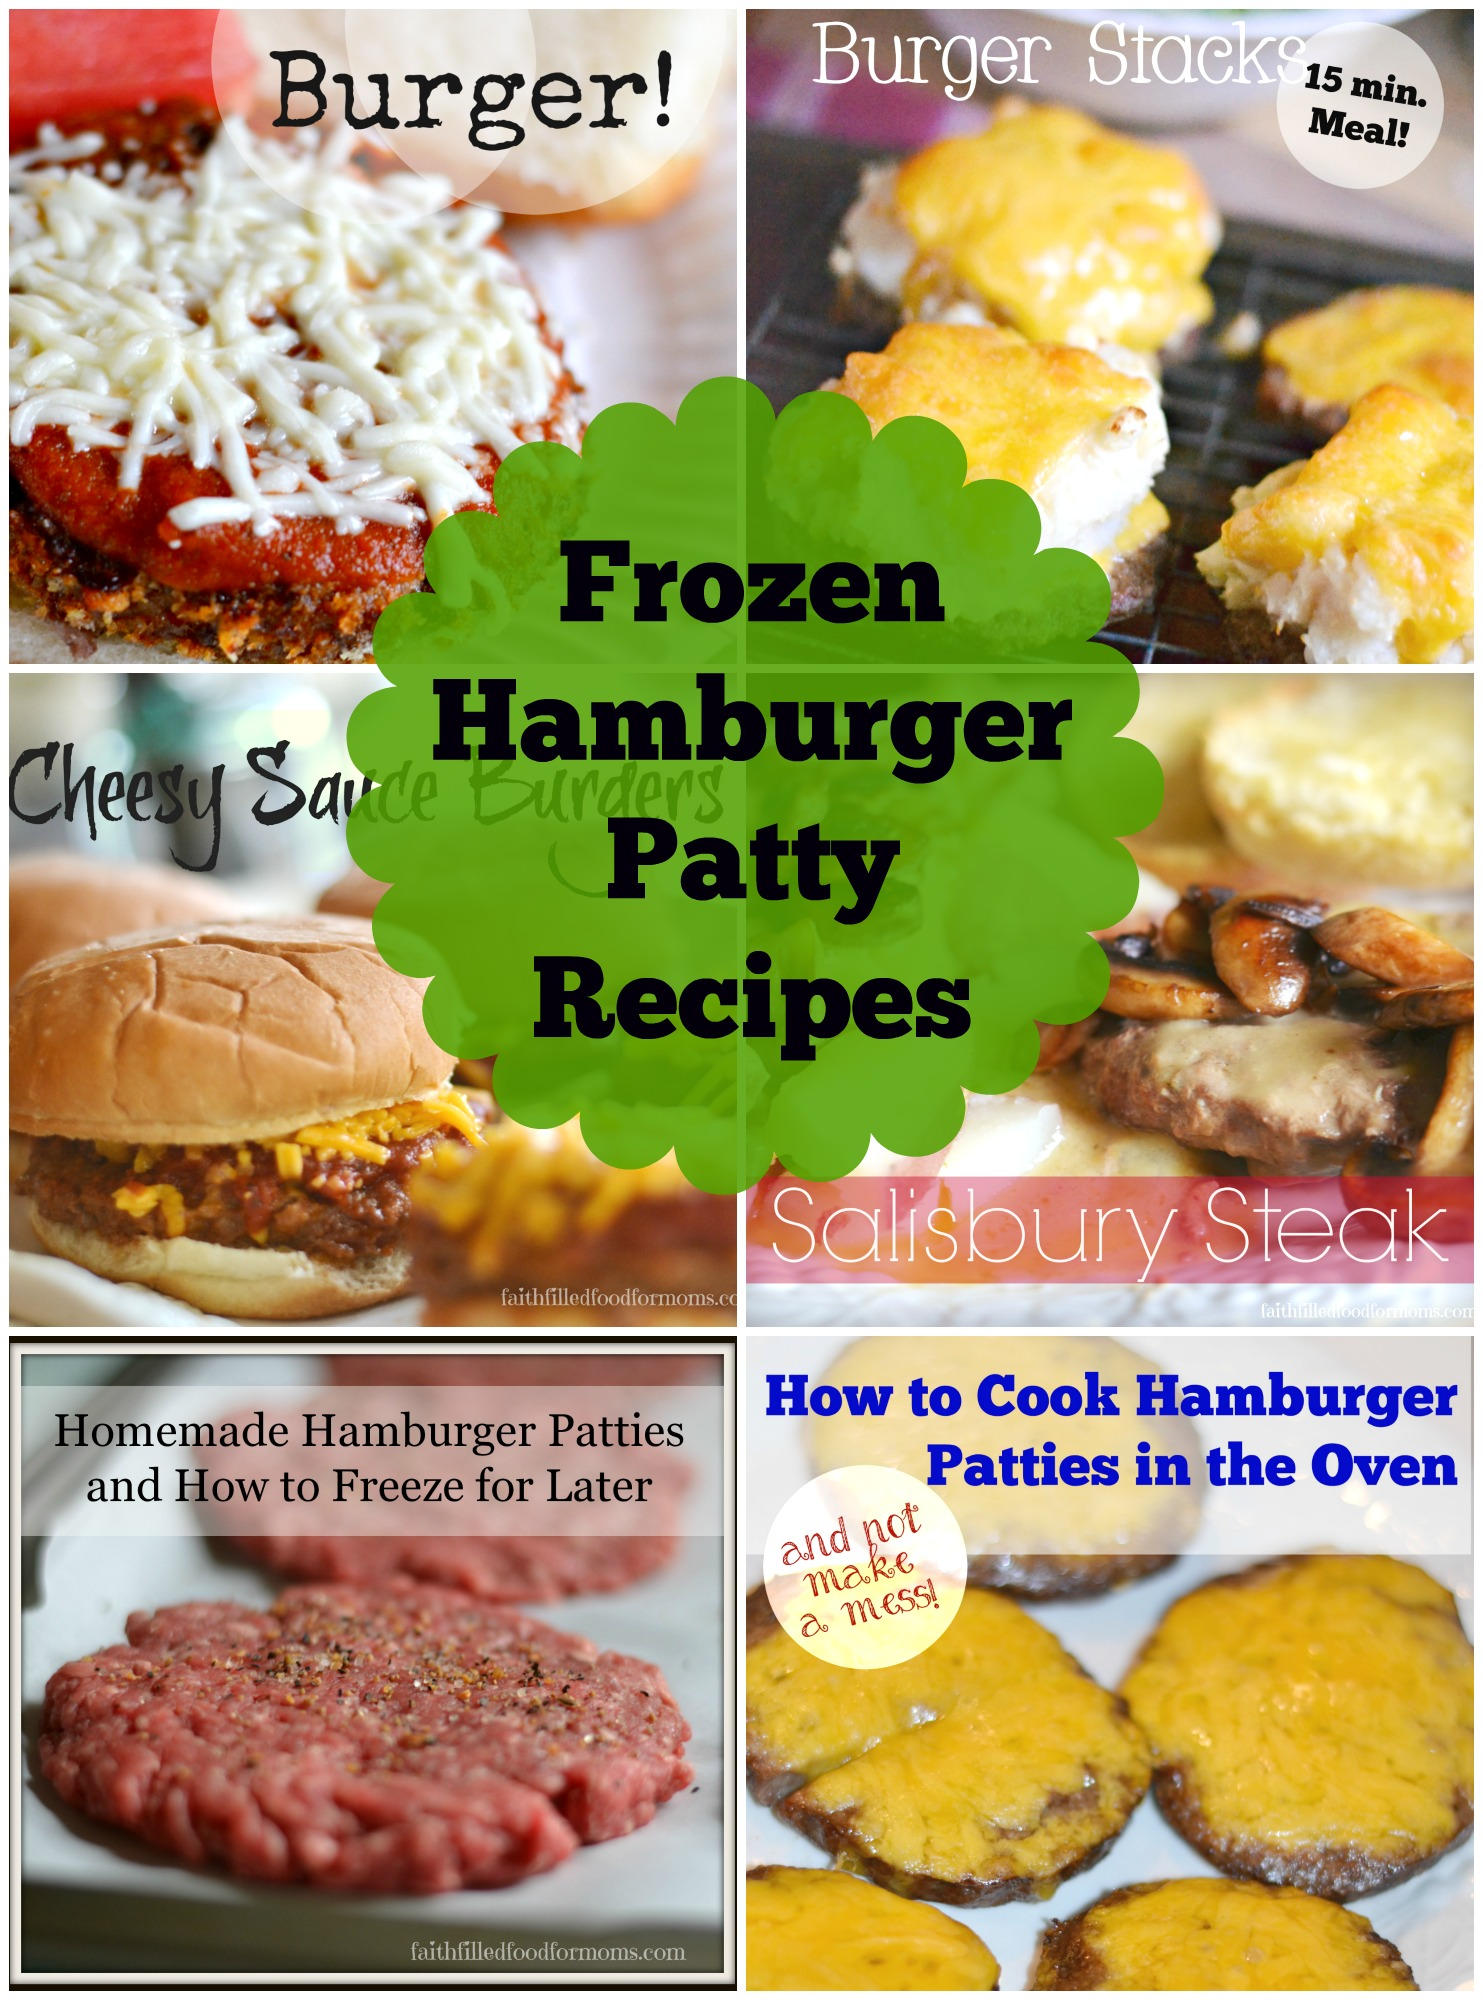 Frozen Hamburger Patty Recipes